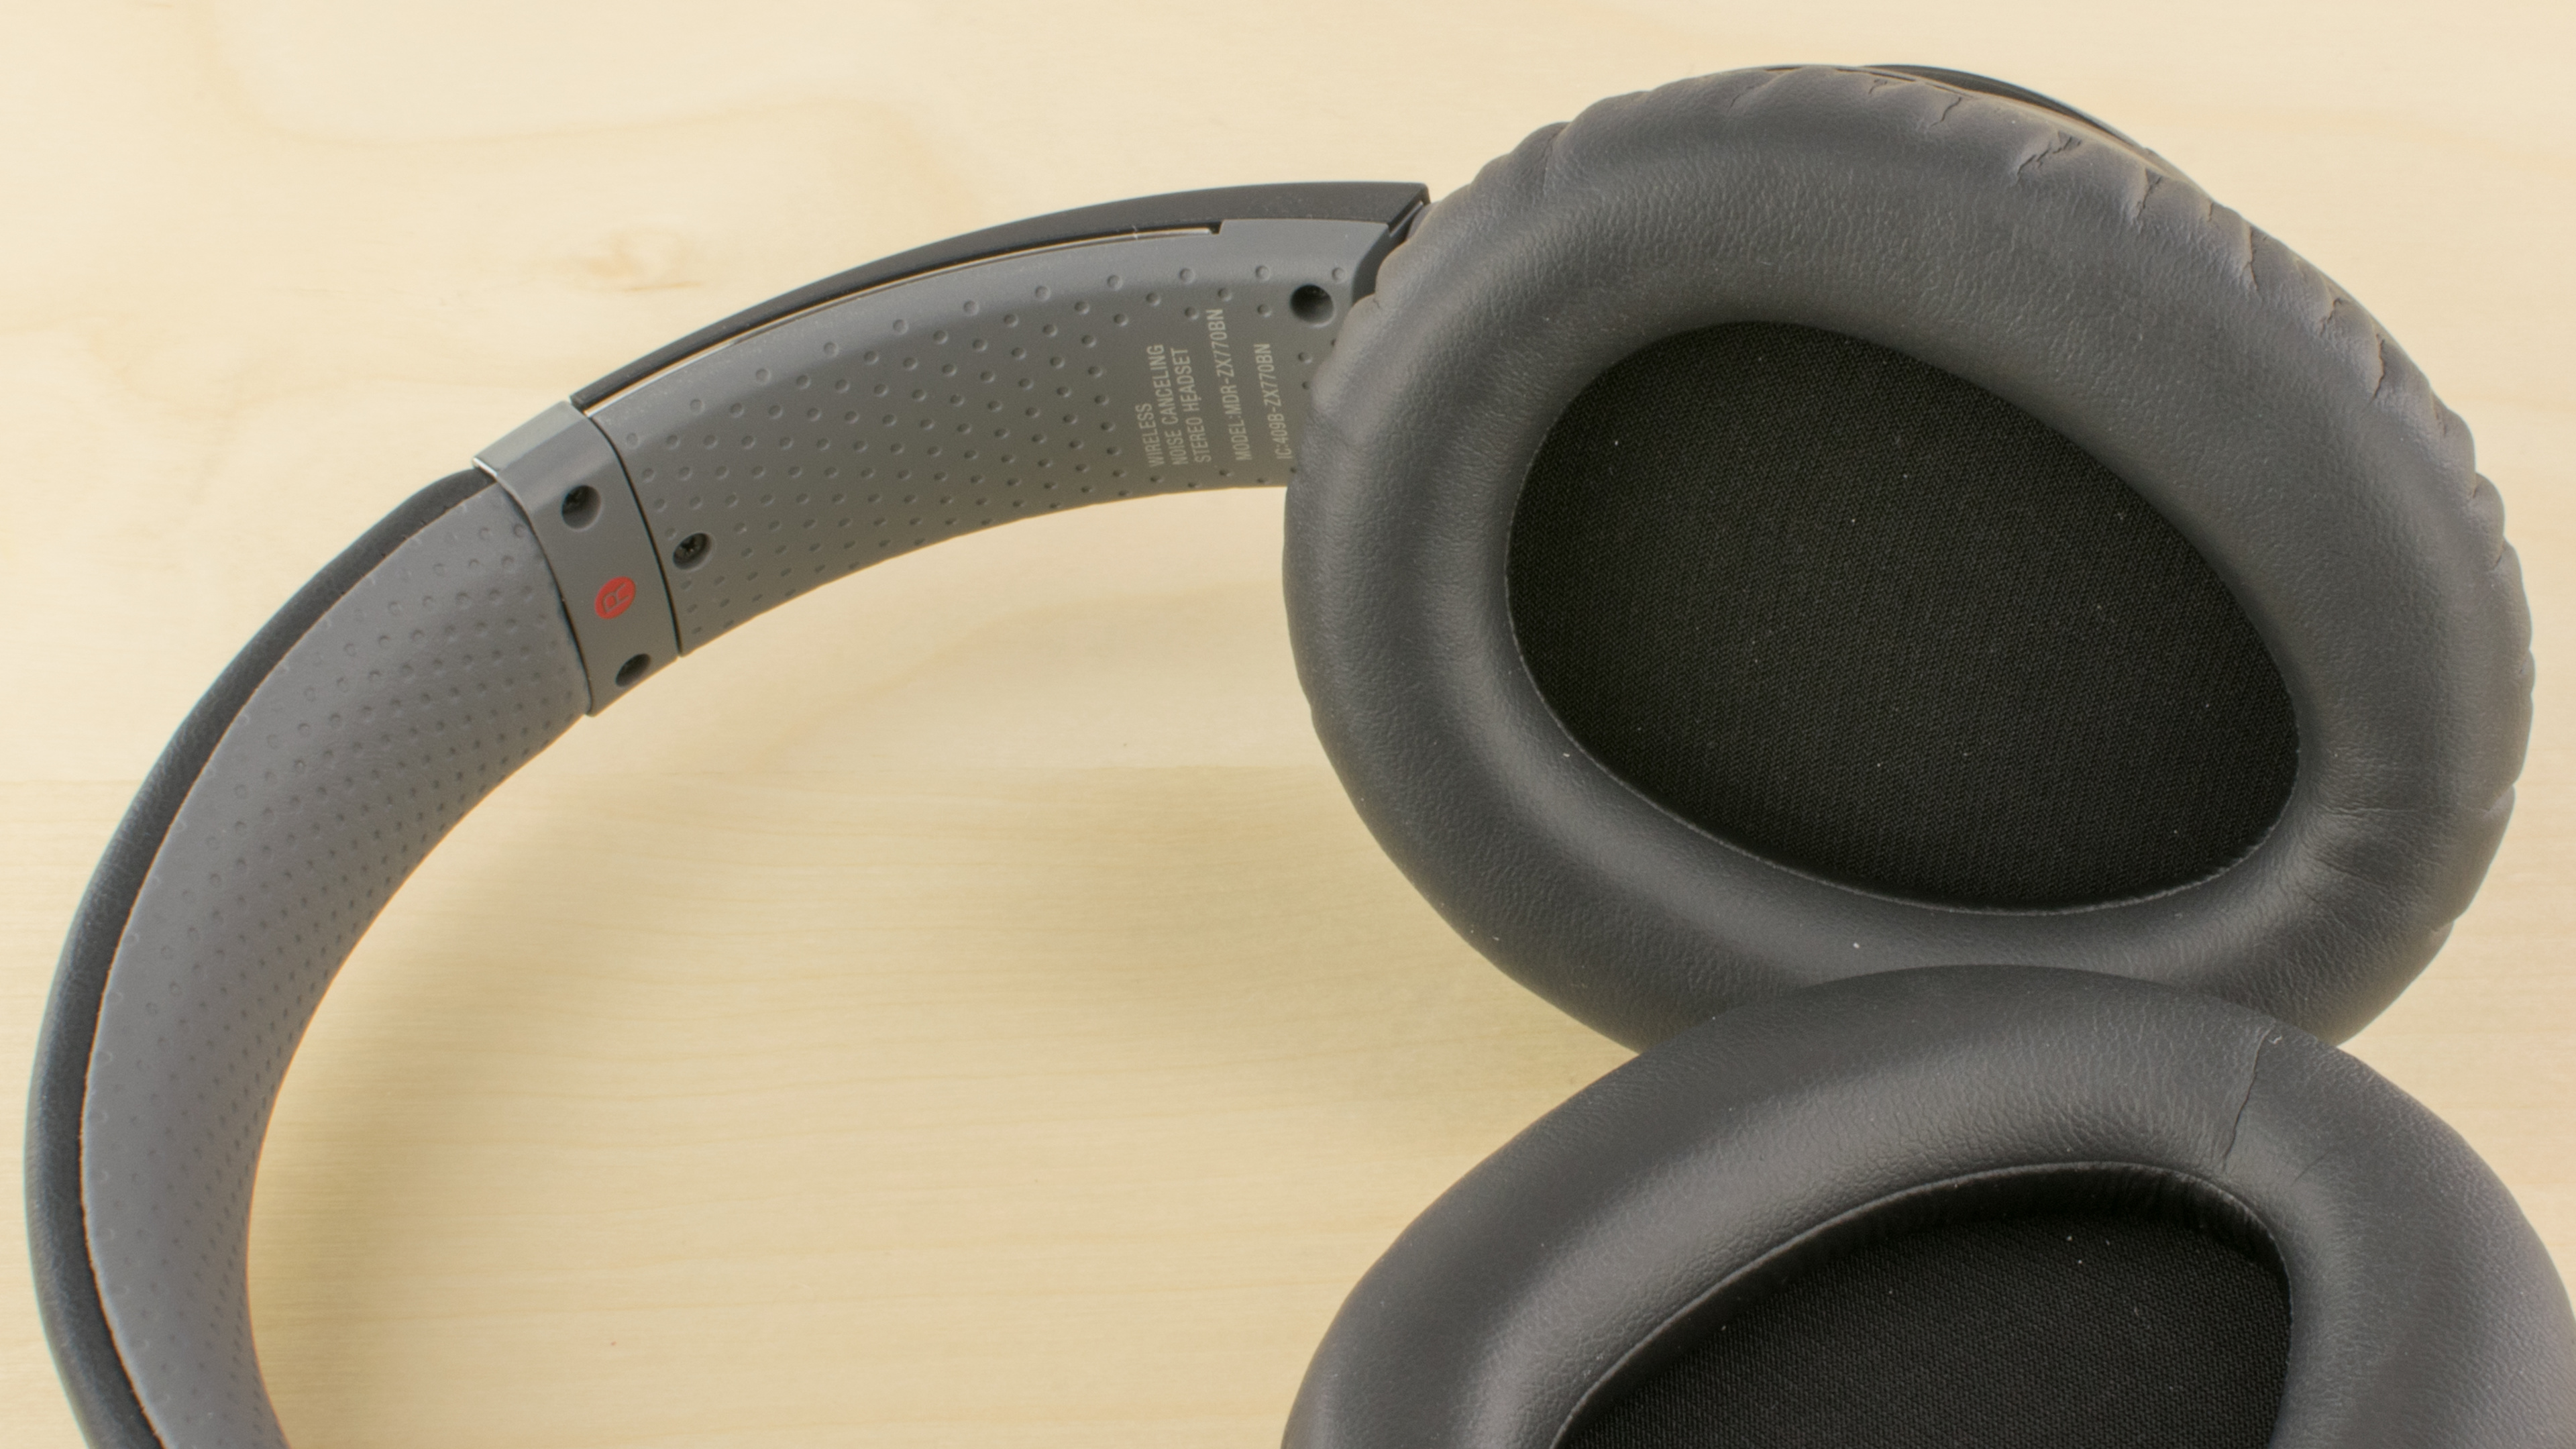 sony mdr zx770bn. sony mdr-zx770bn comfort picture mdr zx770bn